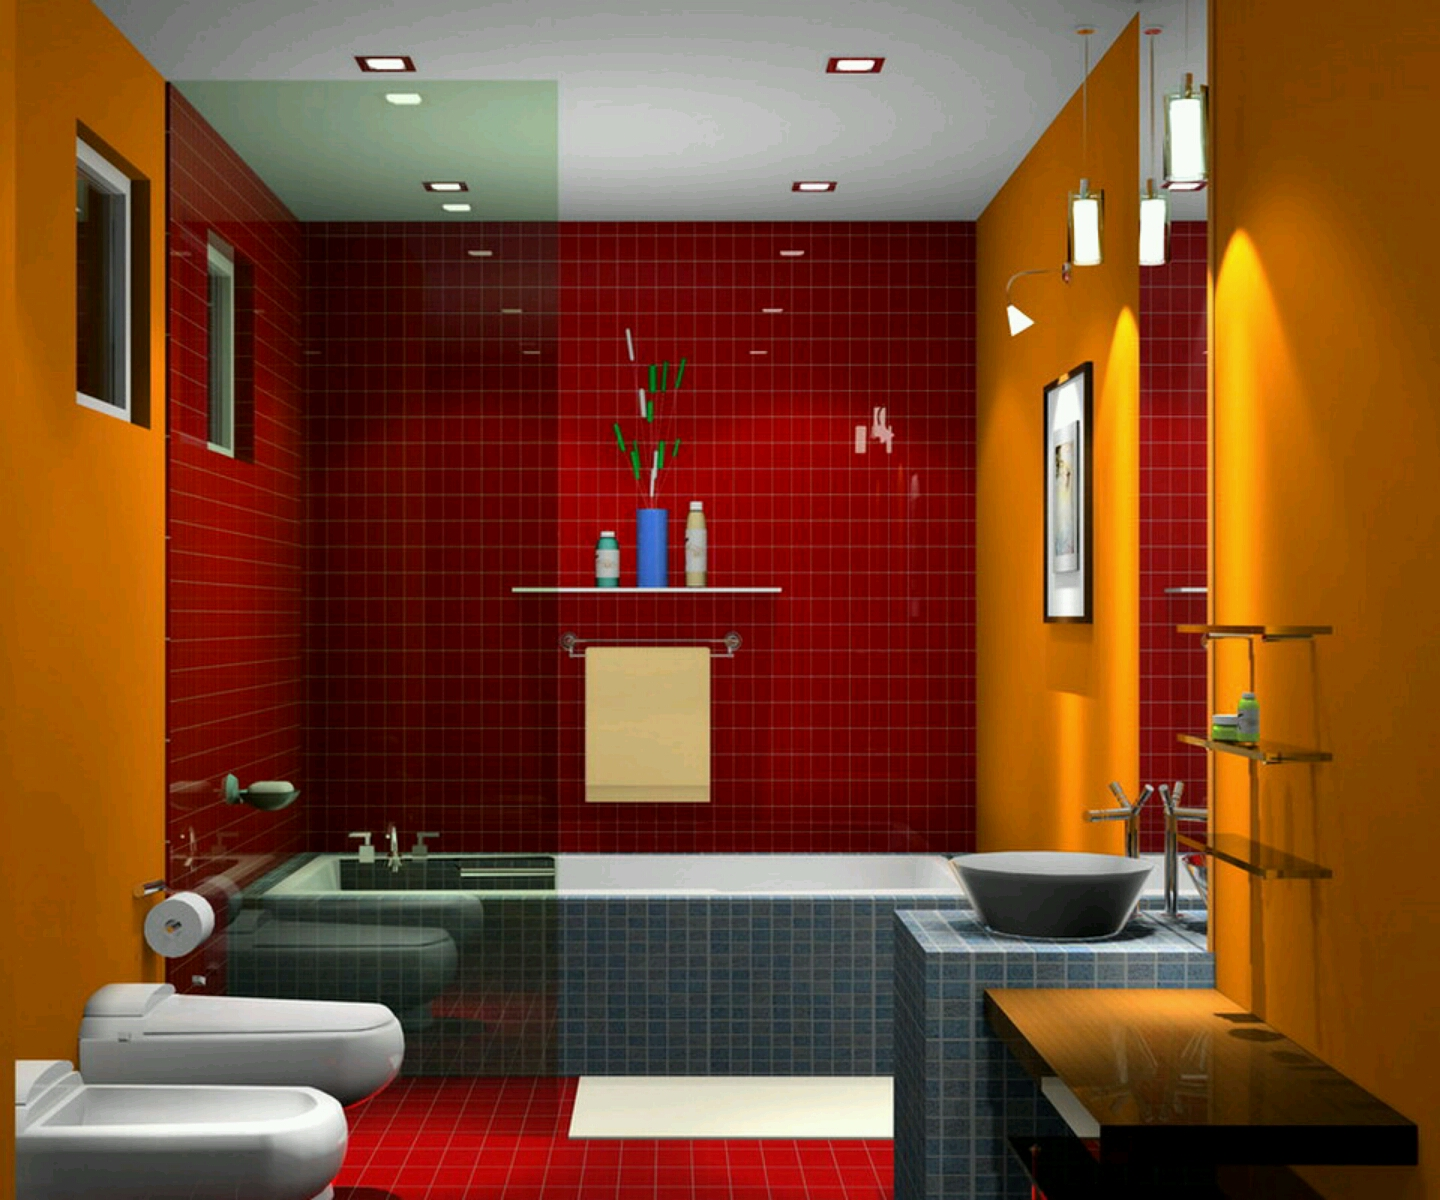 Home Design Ideas Videos: New Home Designs Latest.: Luxury Bathrooms Designs Ideas